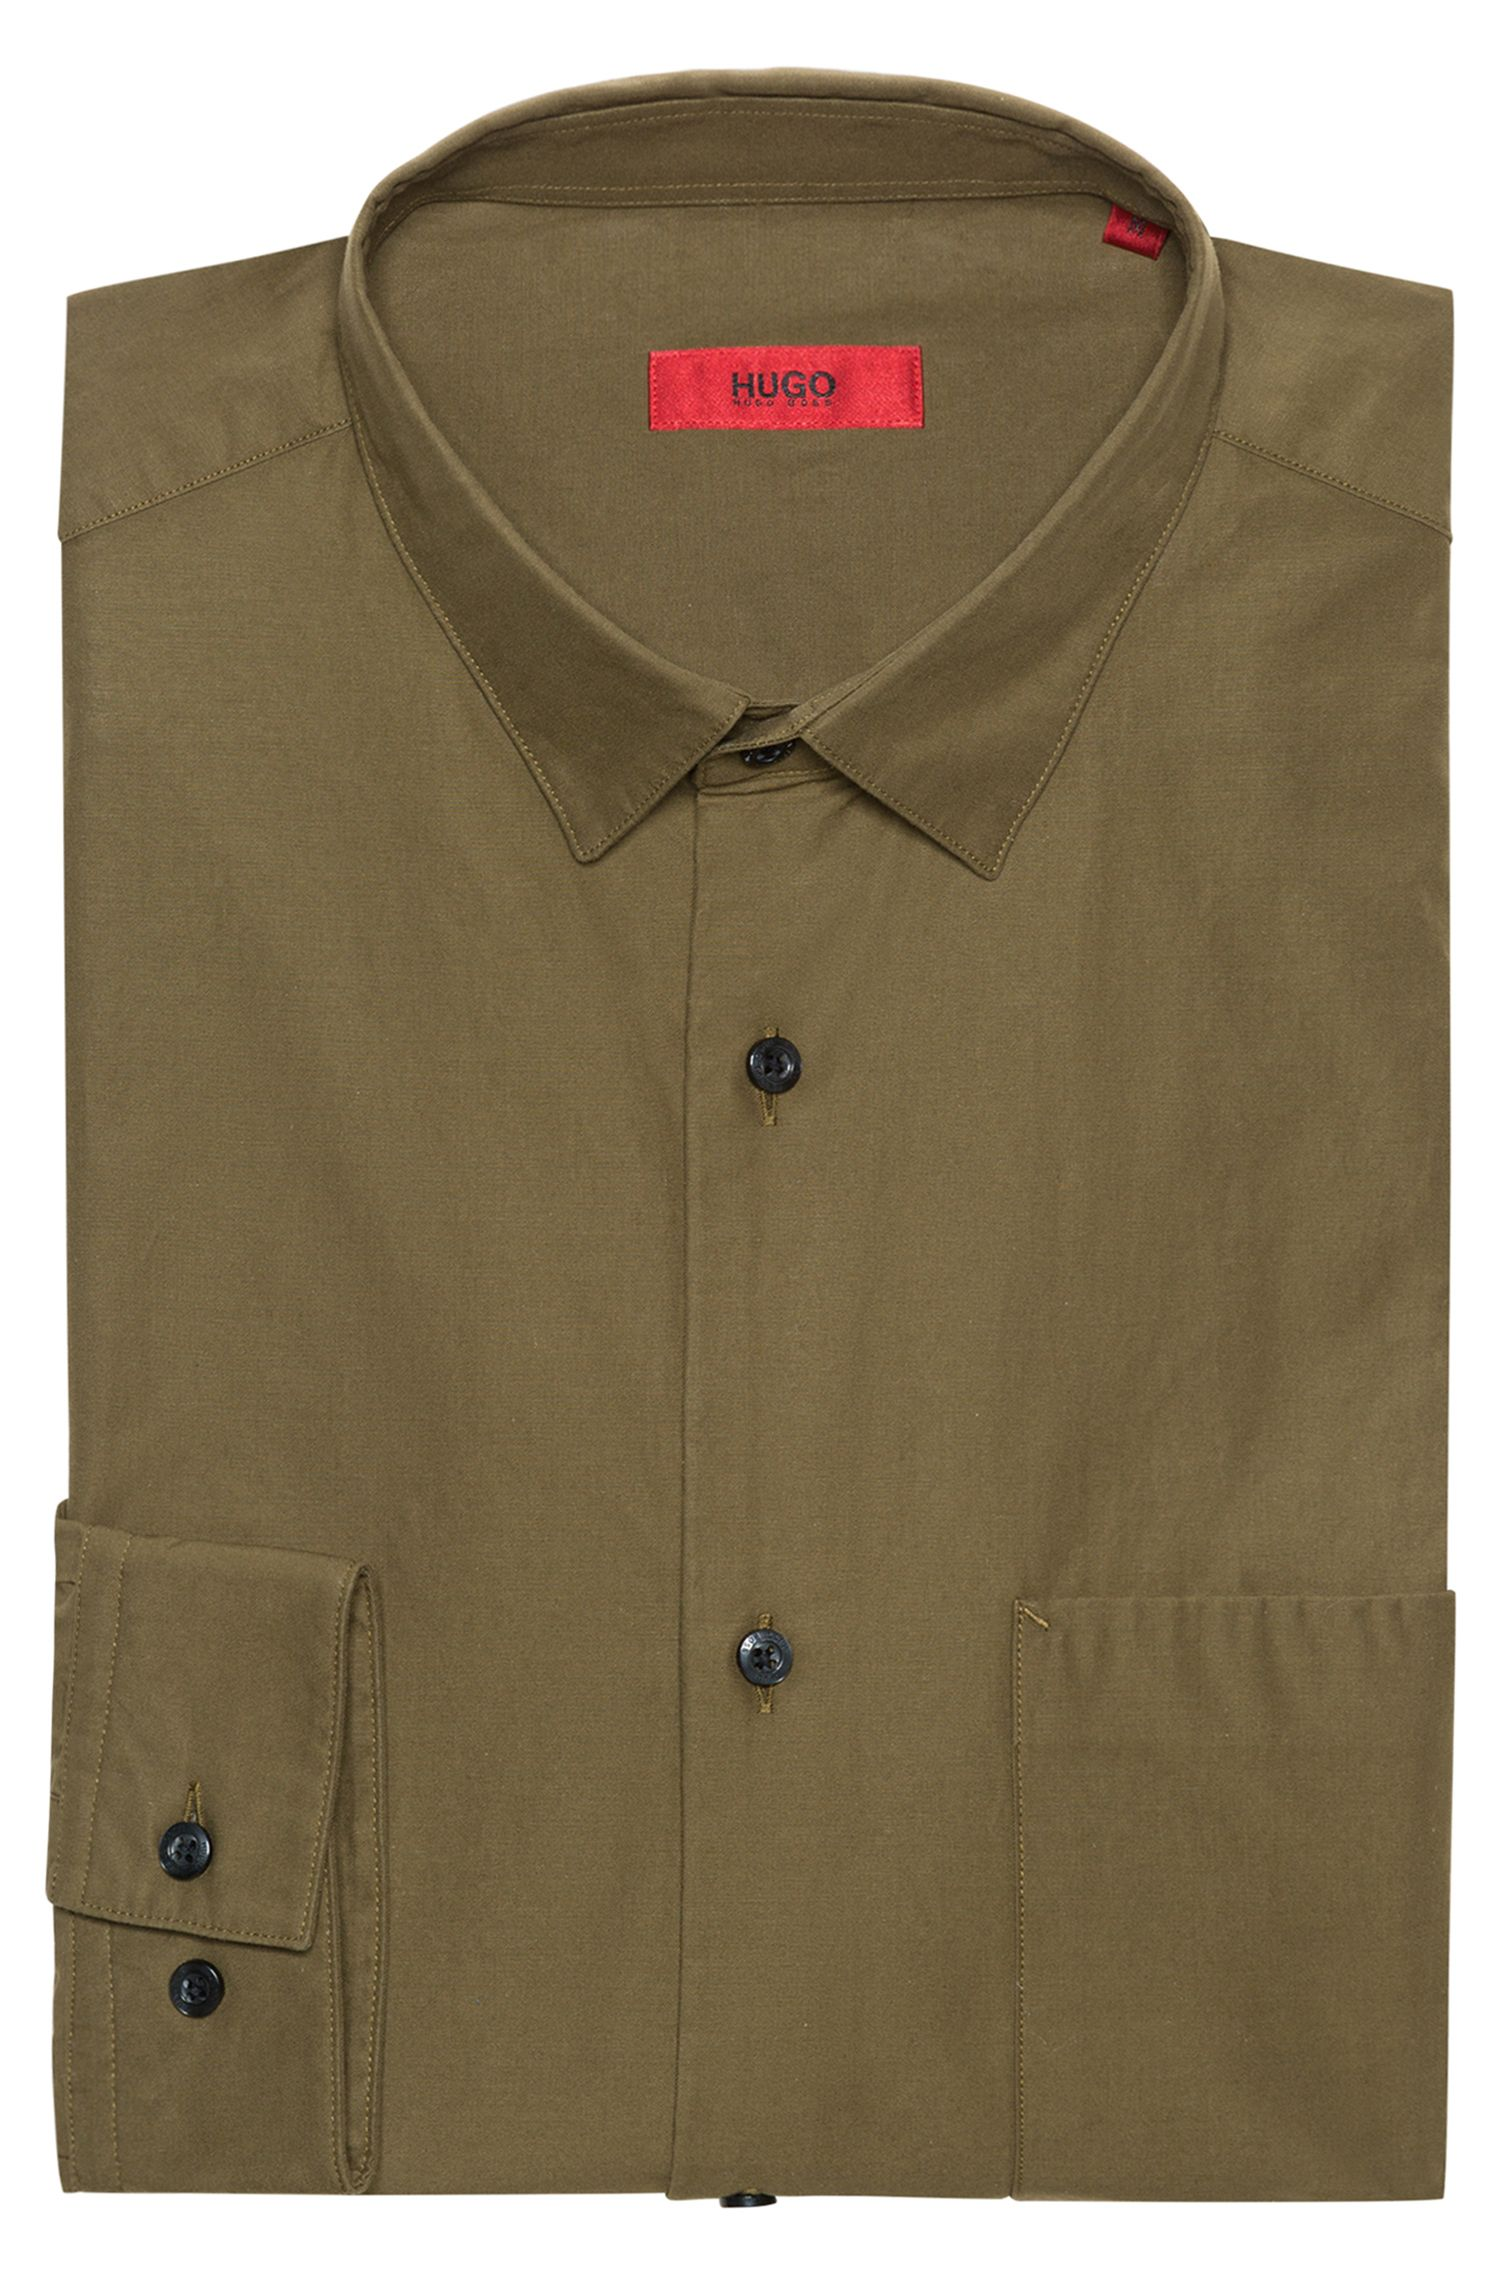 Relaxed-fit shirt in cotton twill with block stripes